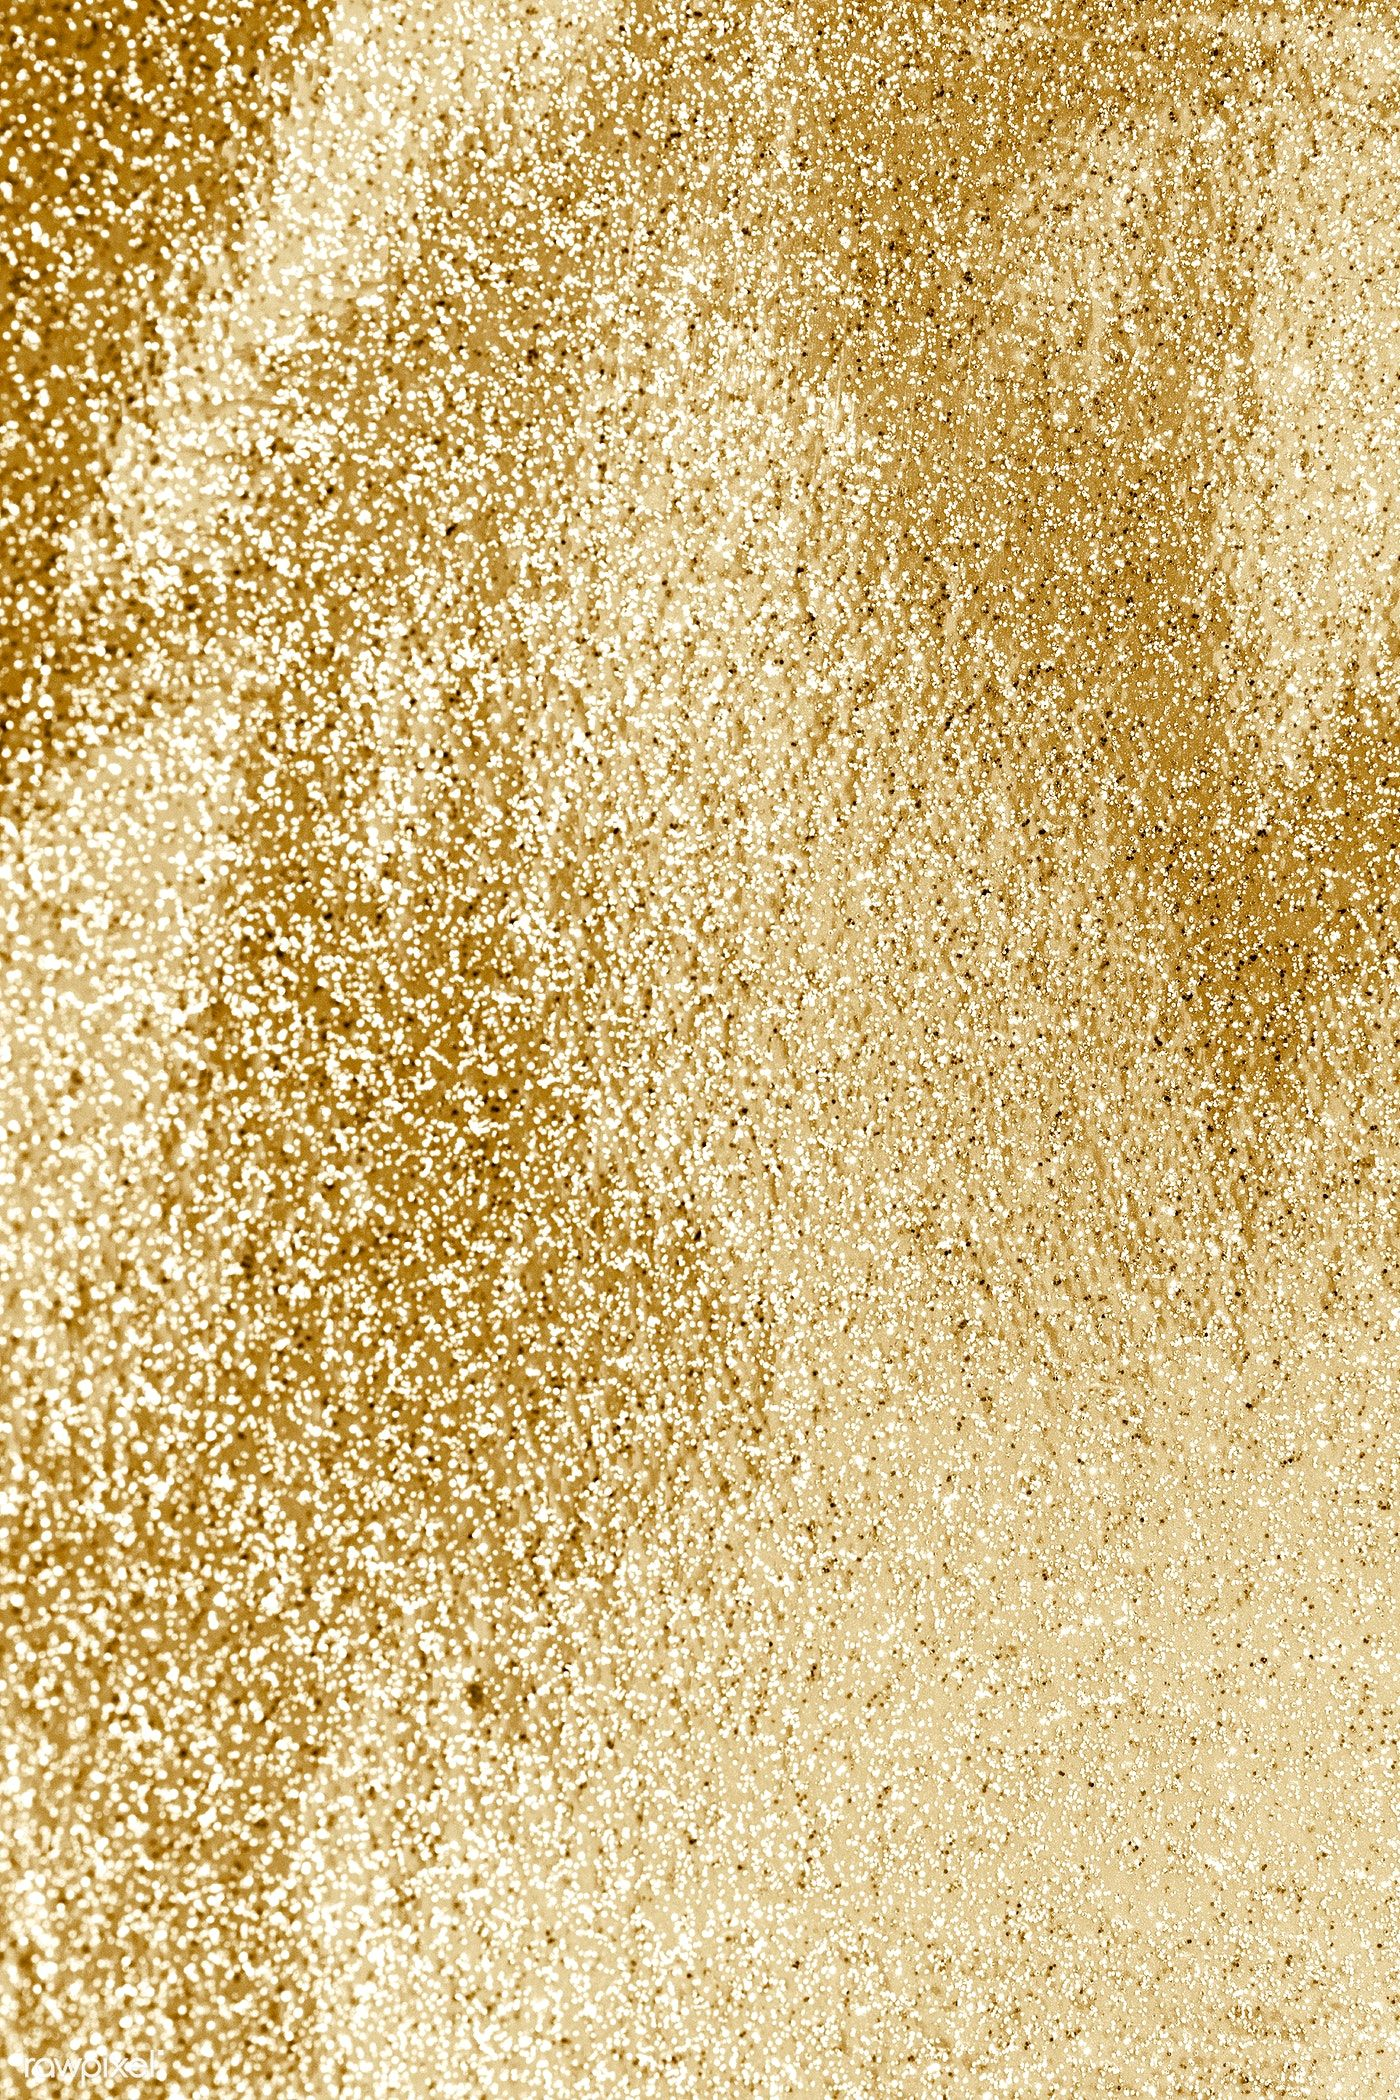 Download free illustration of Gold glitter textured background 2353511